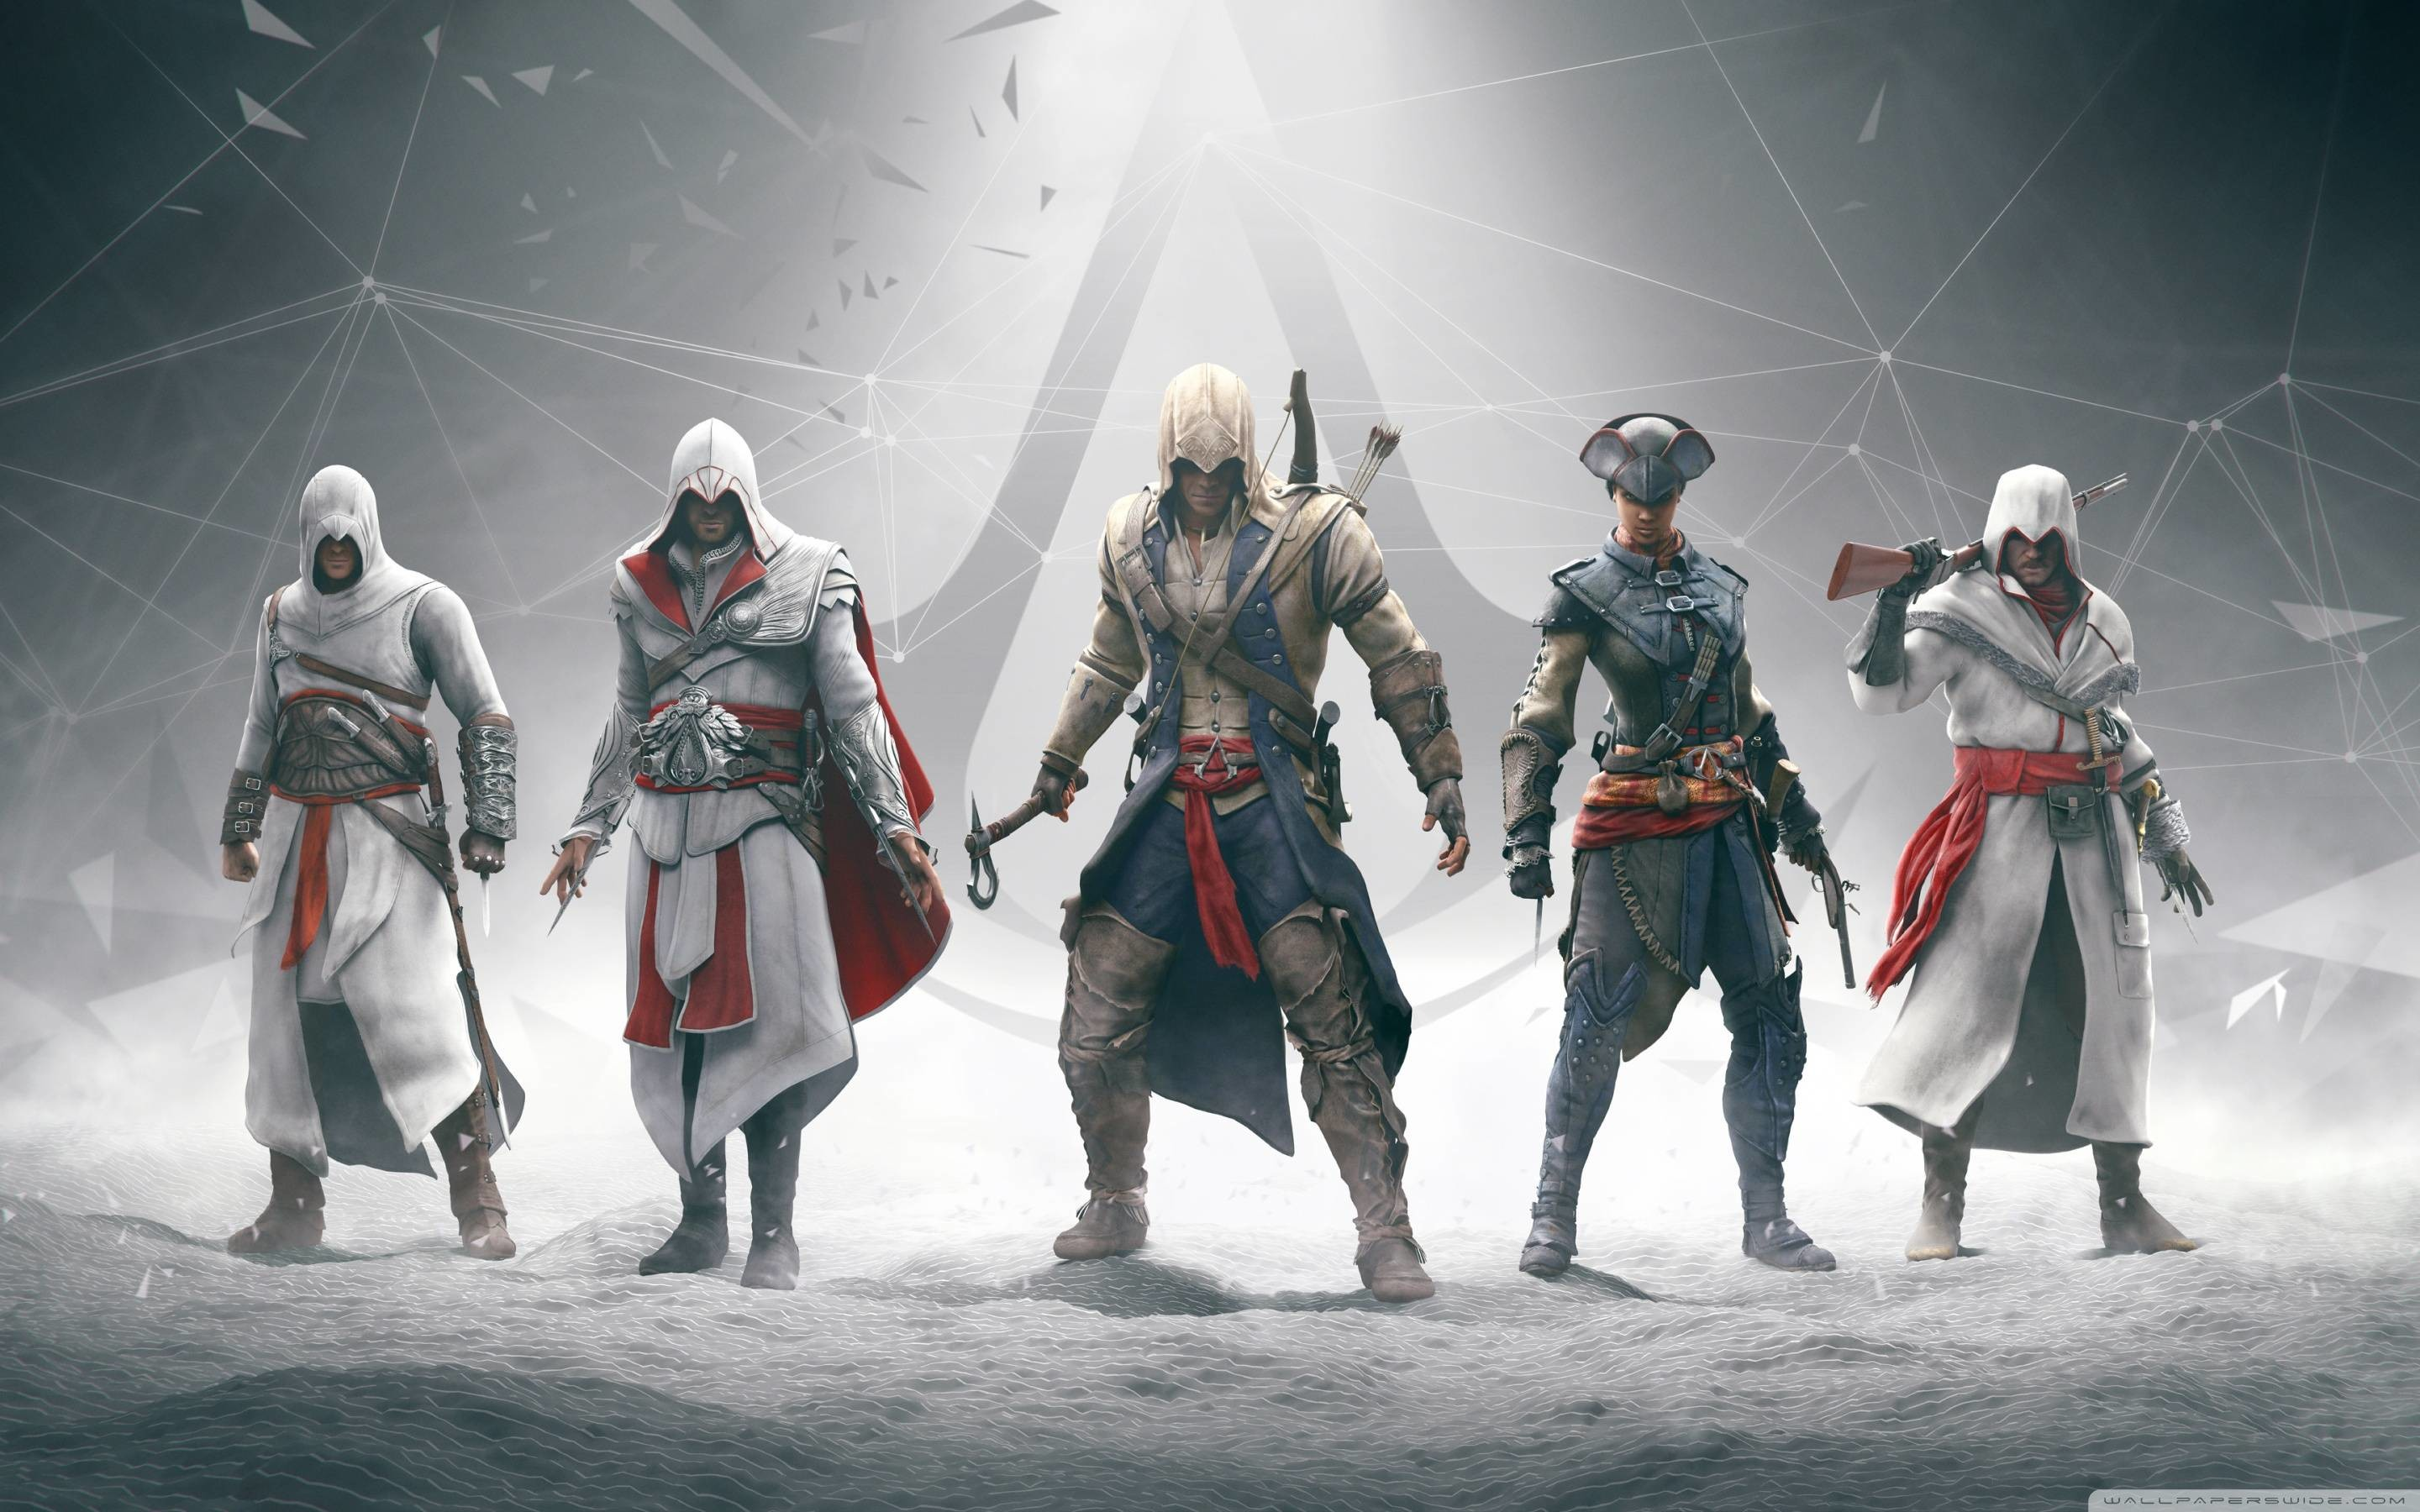 2880x1800 Assassins Creed Wallpapers - Full HD wallpaper search